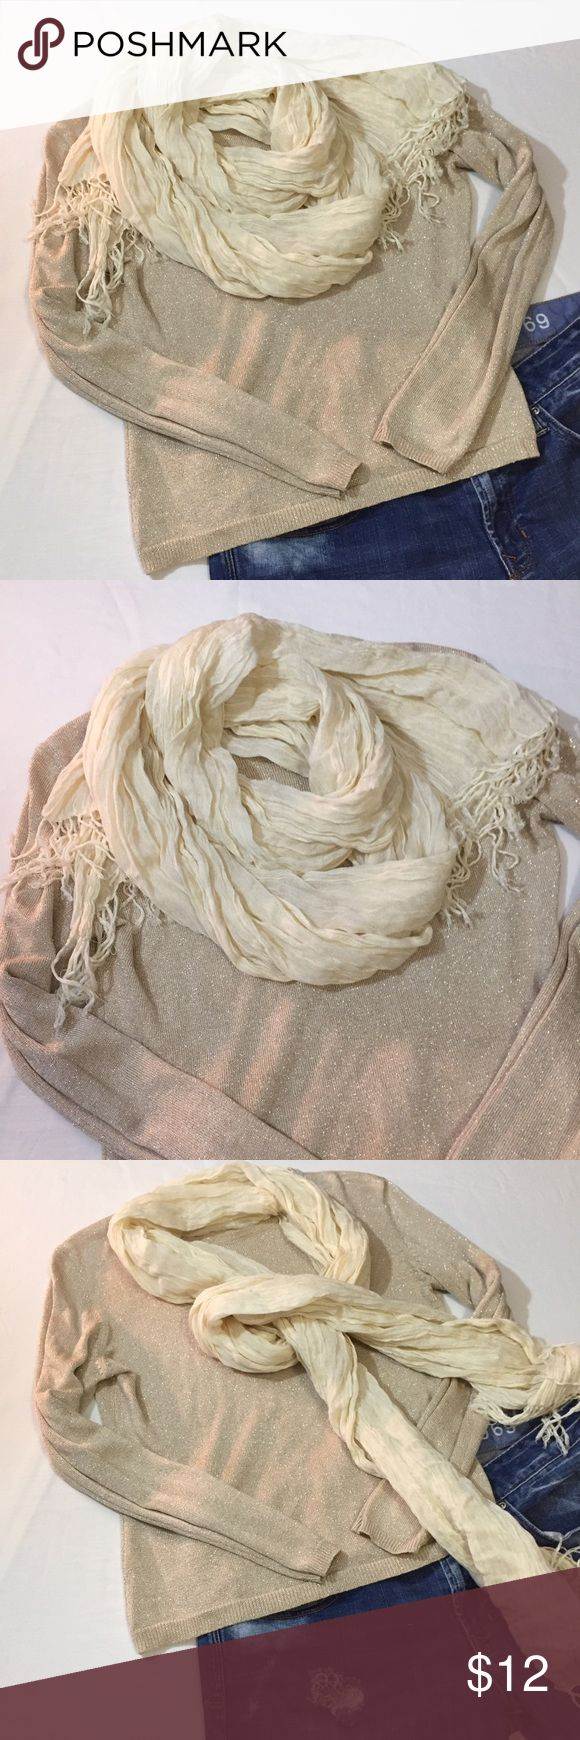 GAP soft cream colored scarf GAP soft cream colored scarf GUC I did remove the label because it was the gap brand tag that was dark navy and you could see when wearing! GAP Accessories Scarves & Wraps